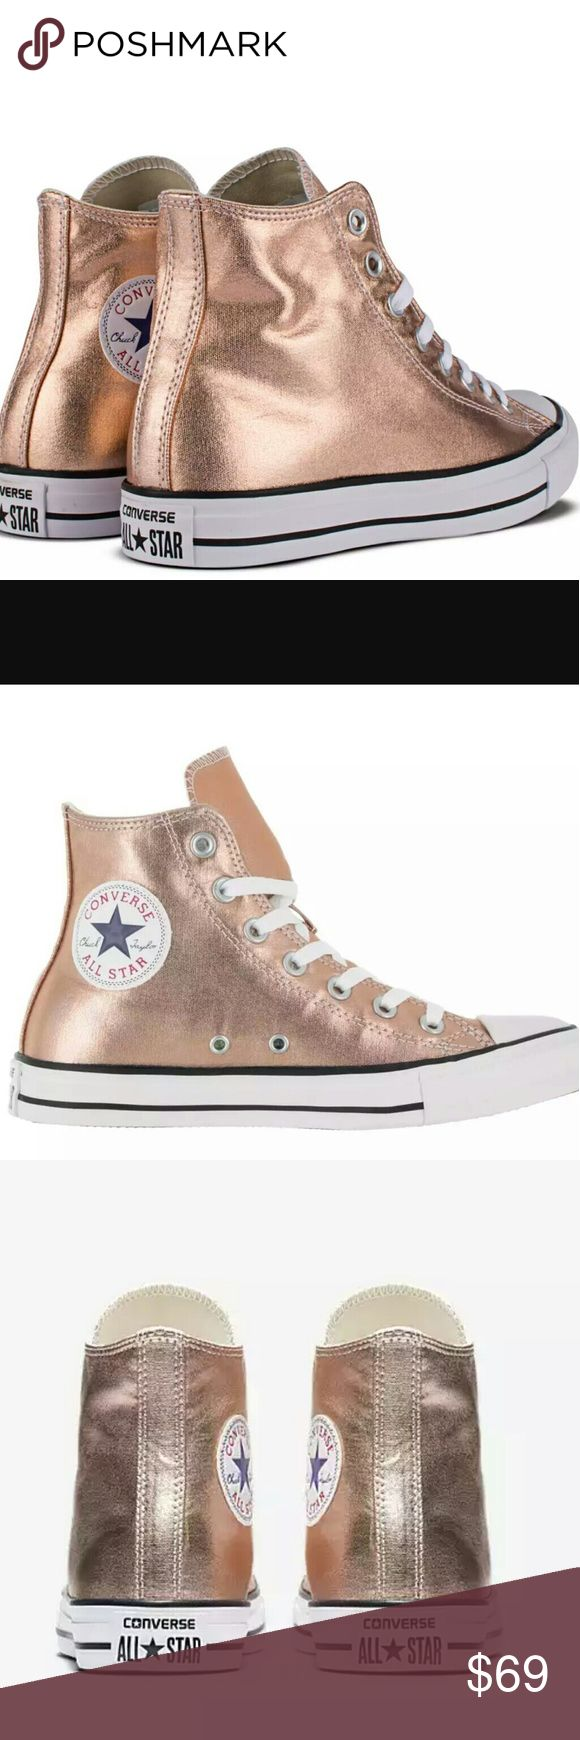 NEW: Converse Chuck Taylor Hi Top Rose Gold  Brand New! Sexy Rose Gold!   The classic Converse Chuck Taylor All Star with a sleek 2017 look   ✨ Note: Size 9 has minor scuffing on inside of right sneaker. Just below the Converse emblem. See last pic.✨ Converse Shoes Sneakers